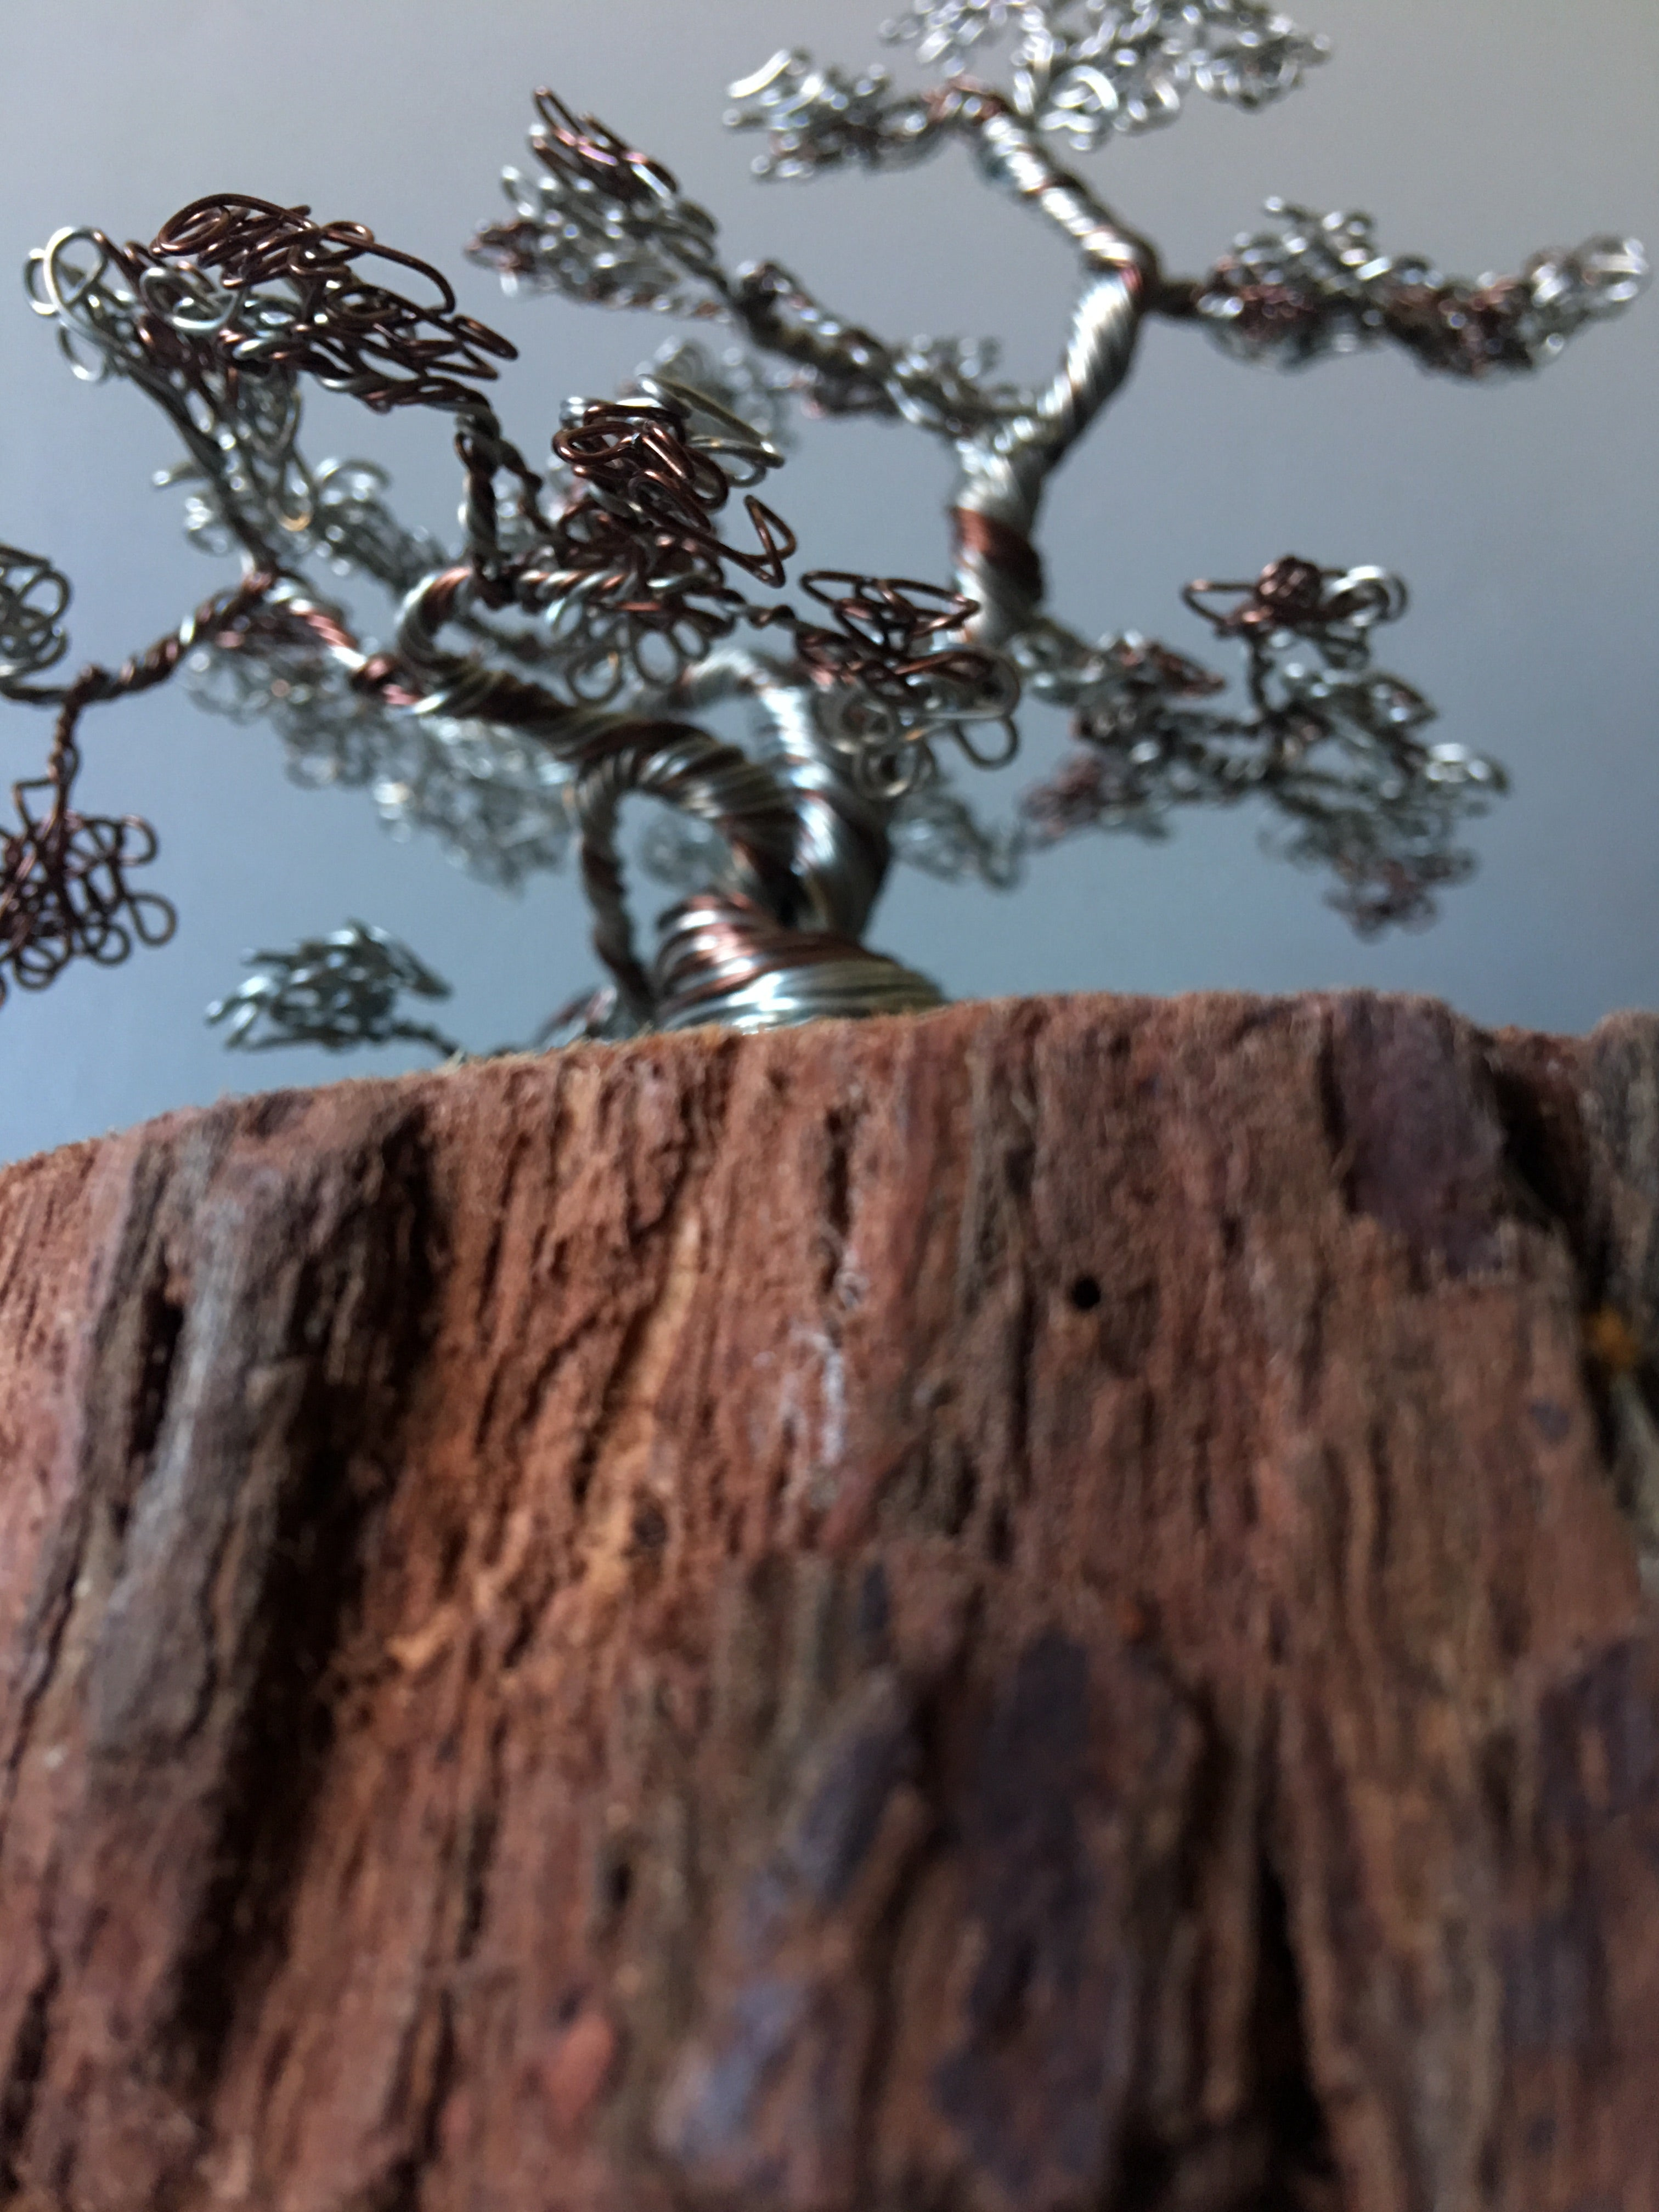 Silver and Bronze Bonsai on Wood